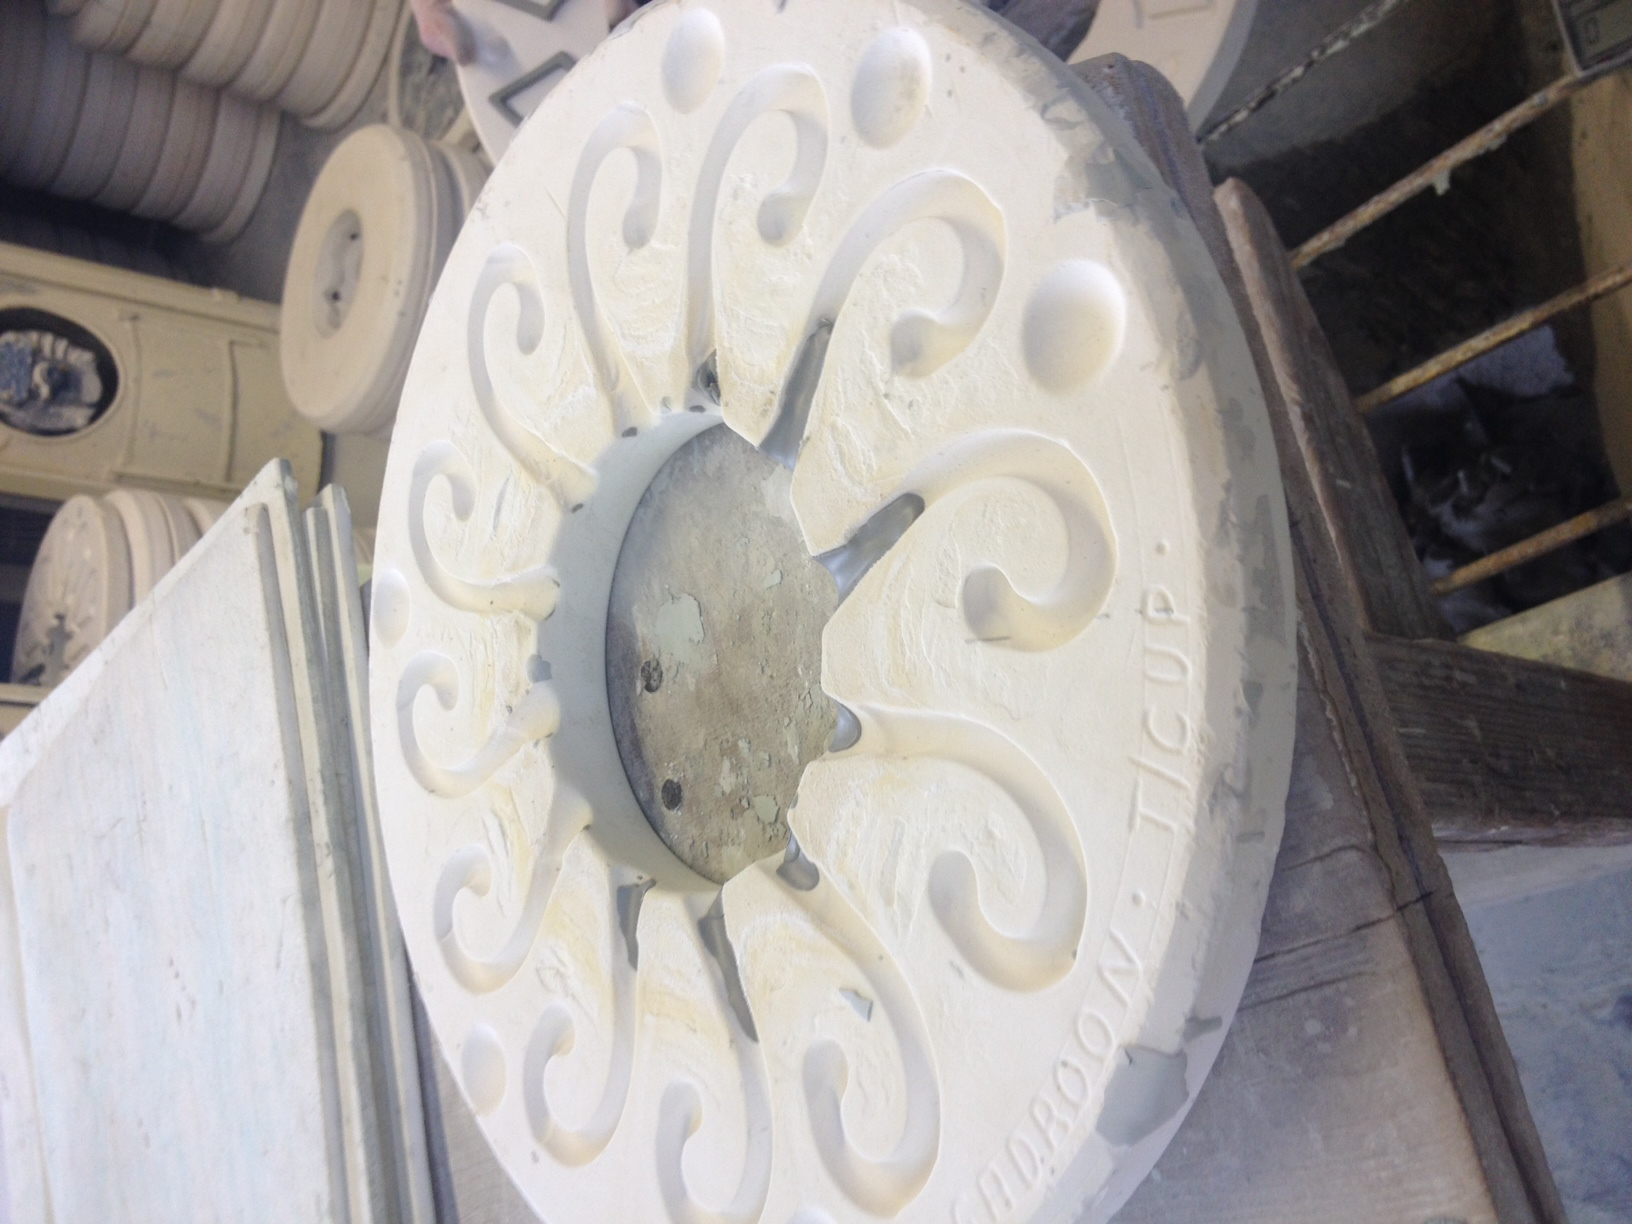 Tea cup handle moulds, liquid clay is poured into these moulds to form the solid handles.